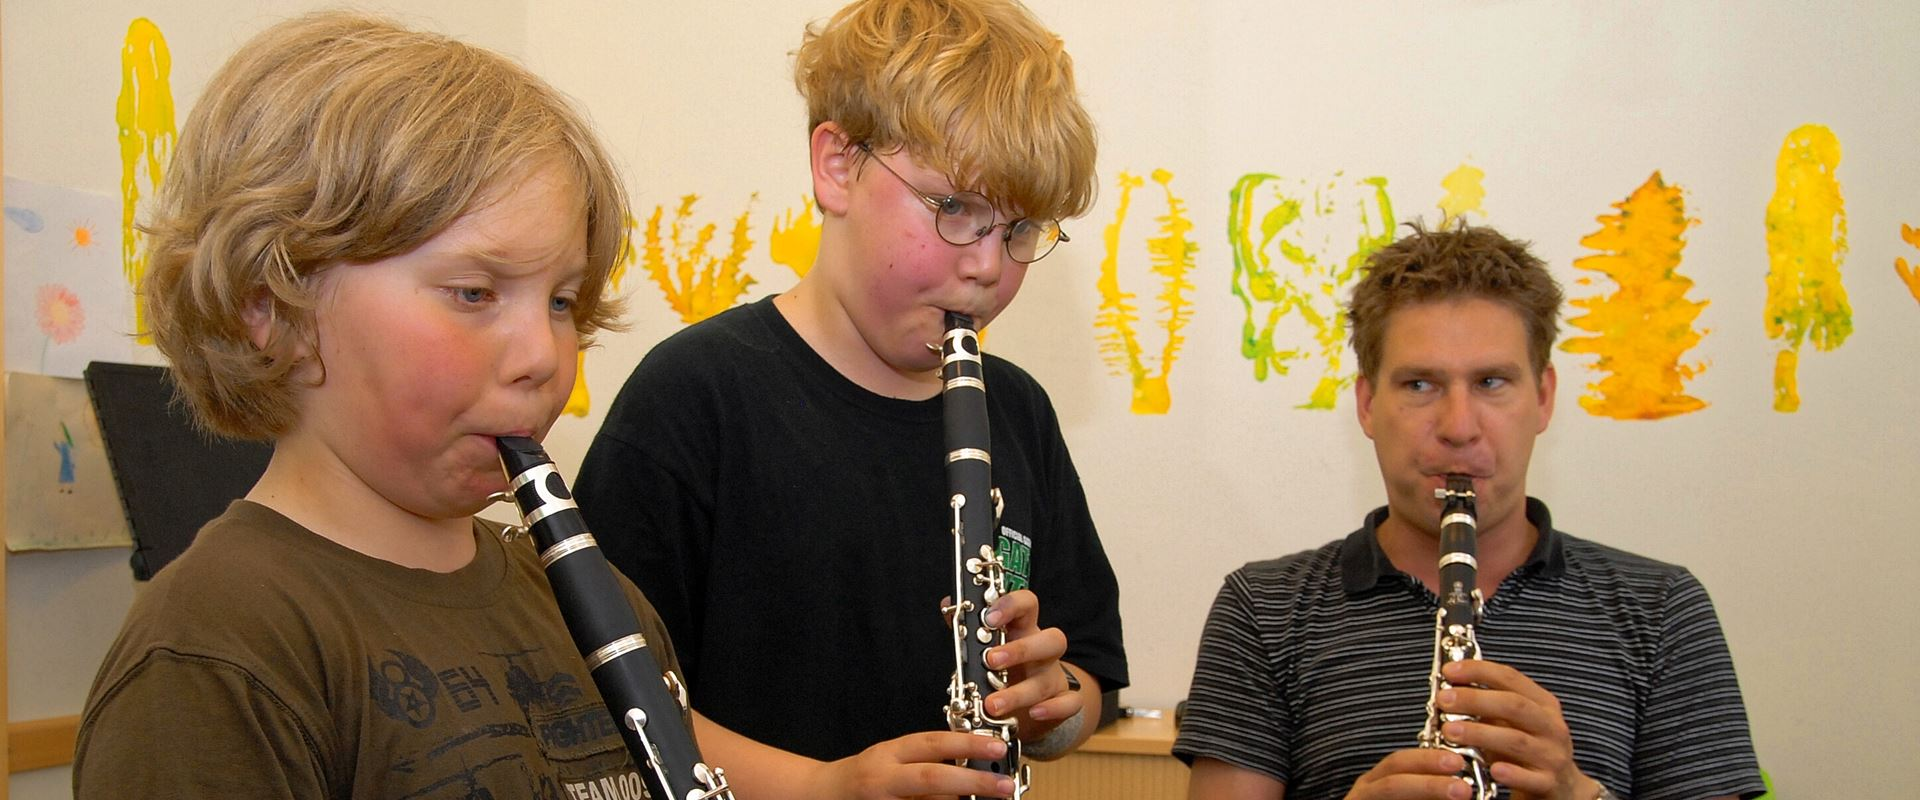 Clarinet lessons in the music school Bertheau & Morgenstern